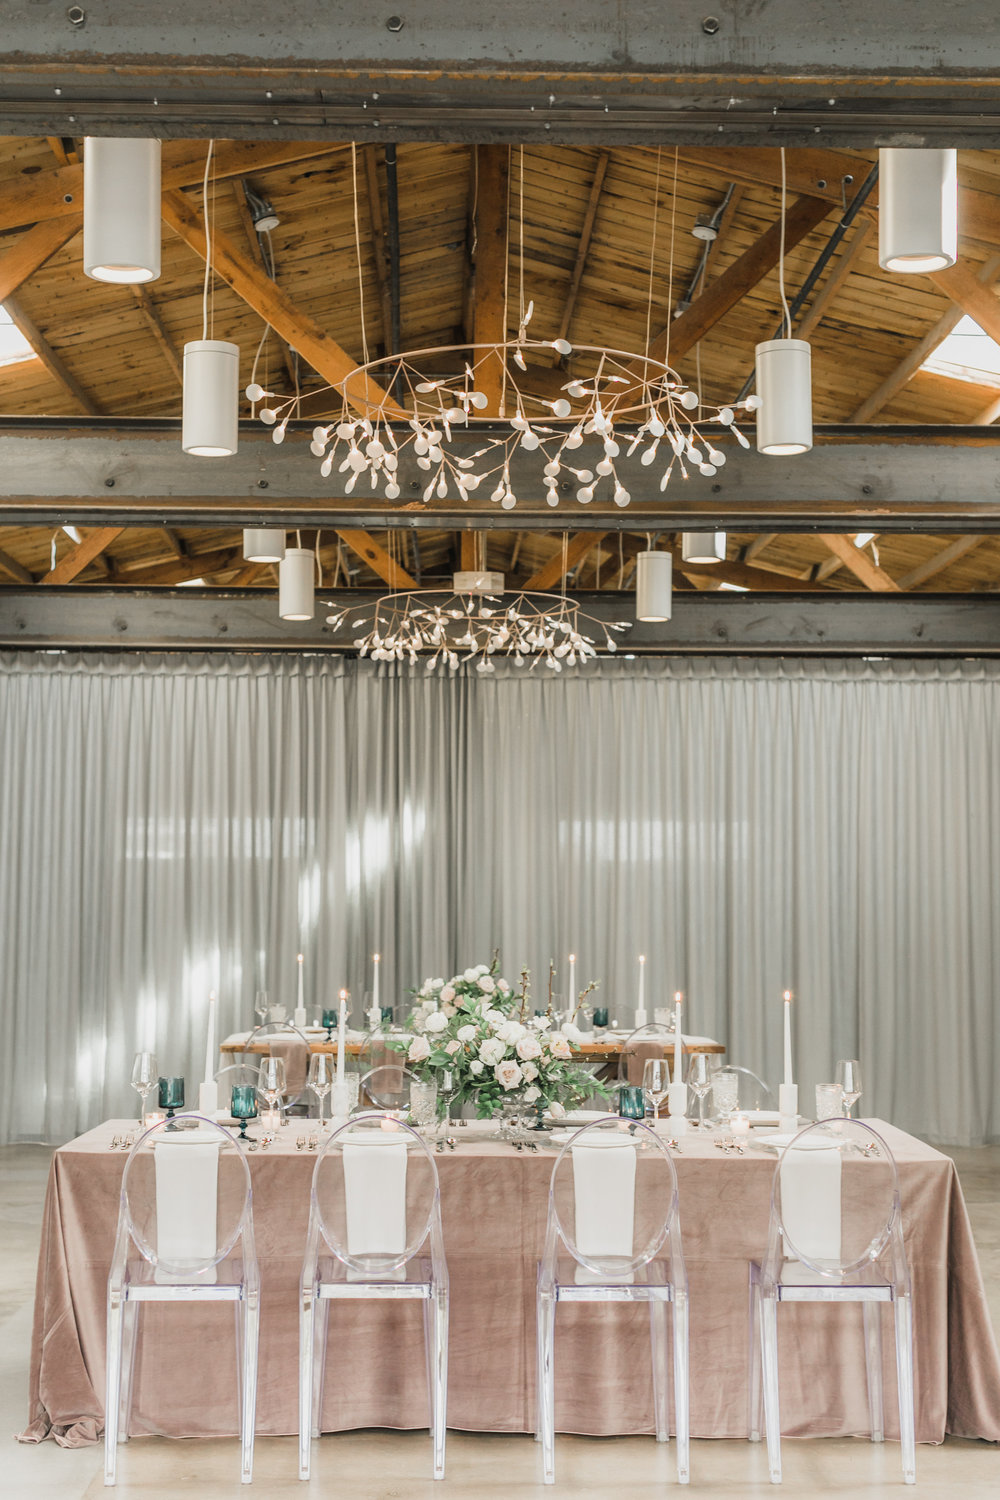 Blush and White Cherry Blossom Inspired Wedding - Reception Tables